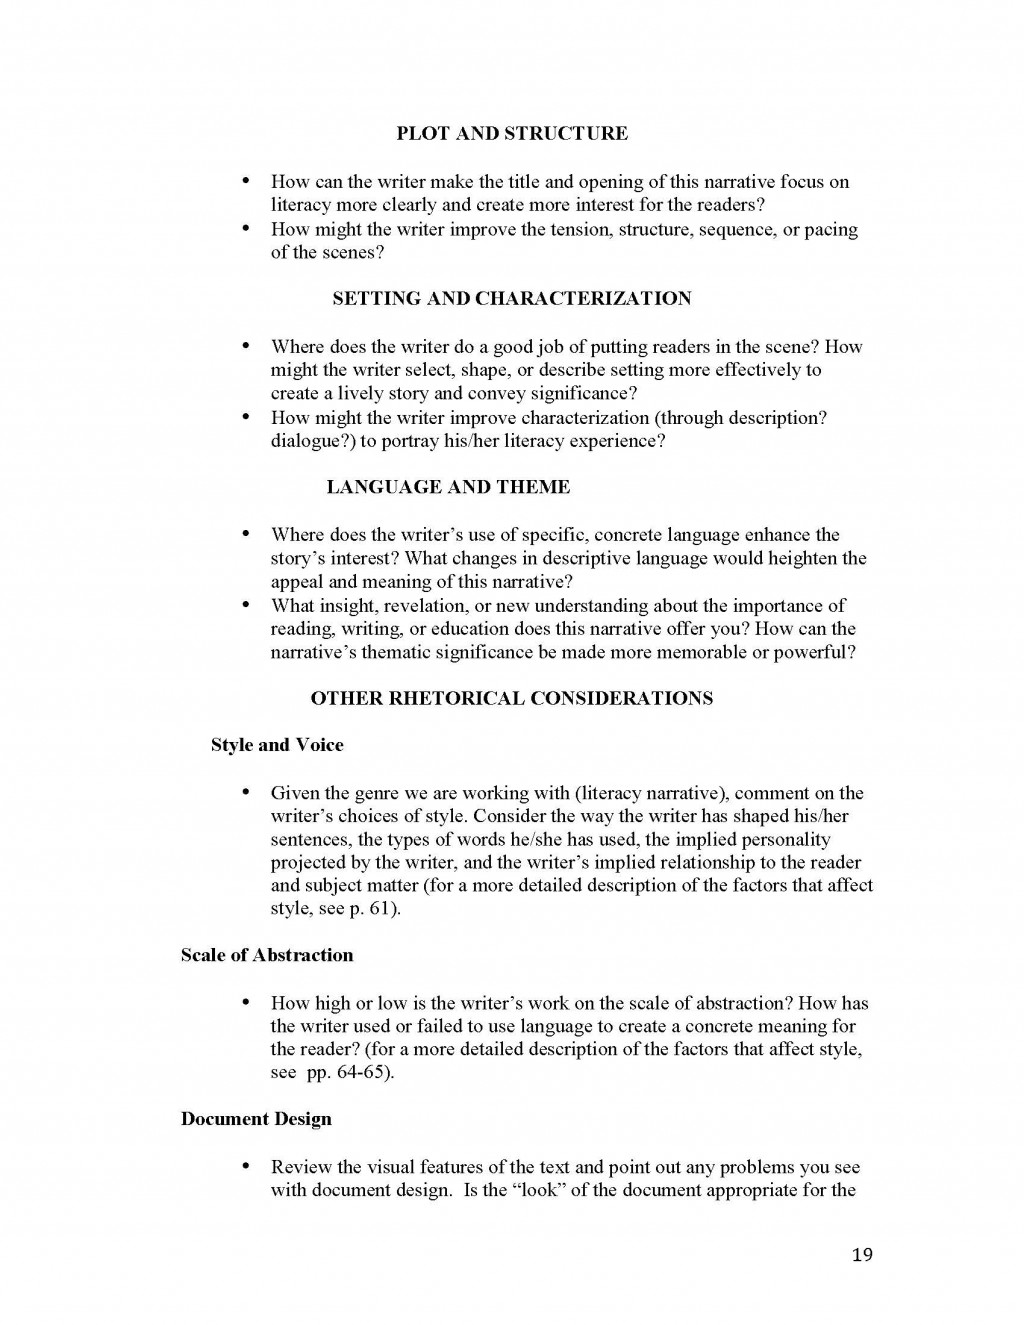 010 Unit 1 Literacy Narrative Instructor Copy Page 19 Immigration Essay Exceptional Conclusion Topics Large